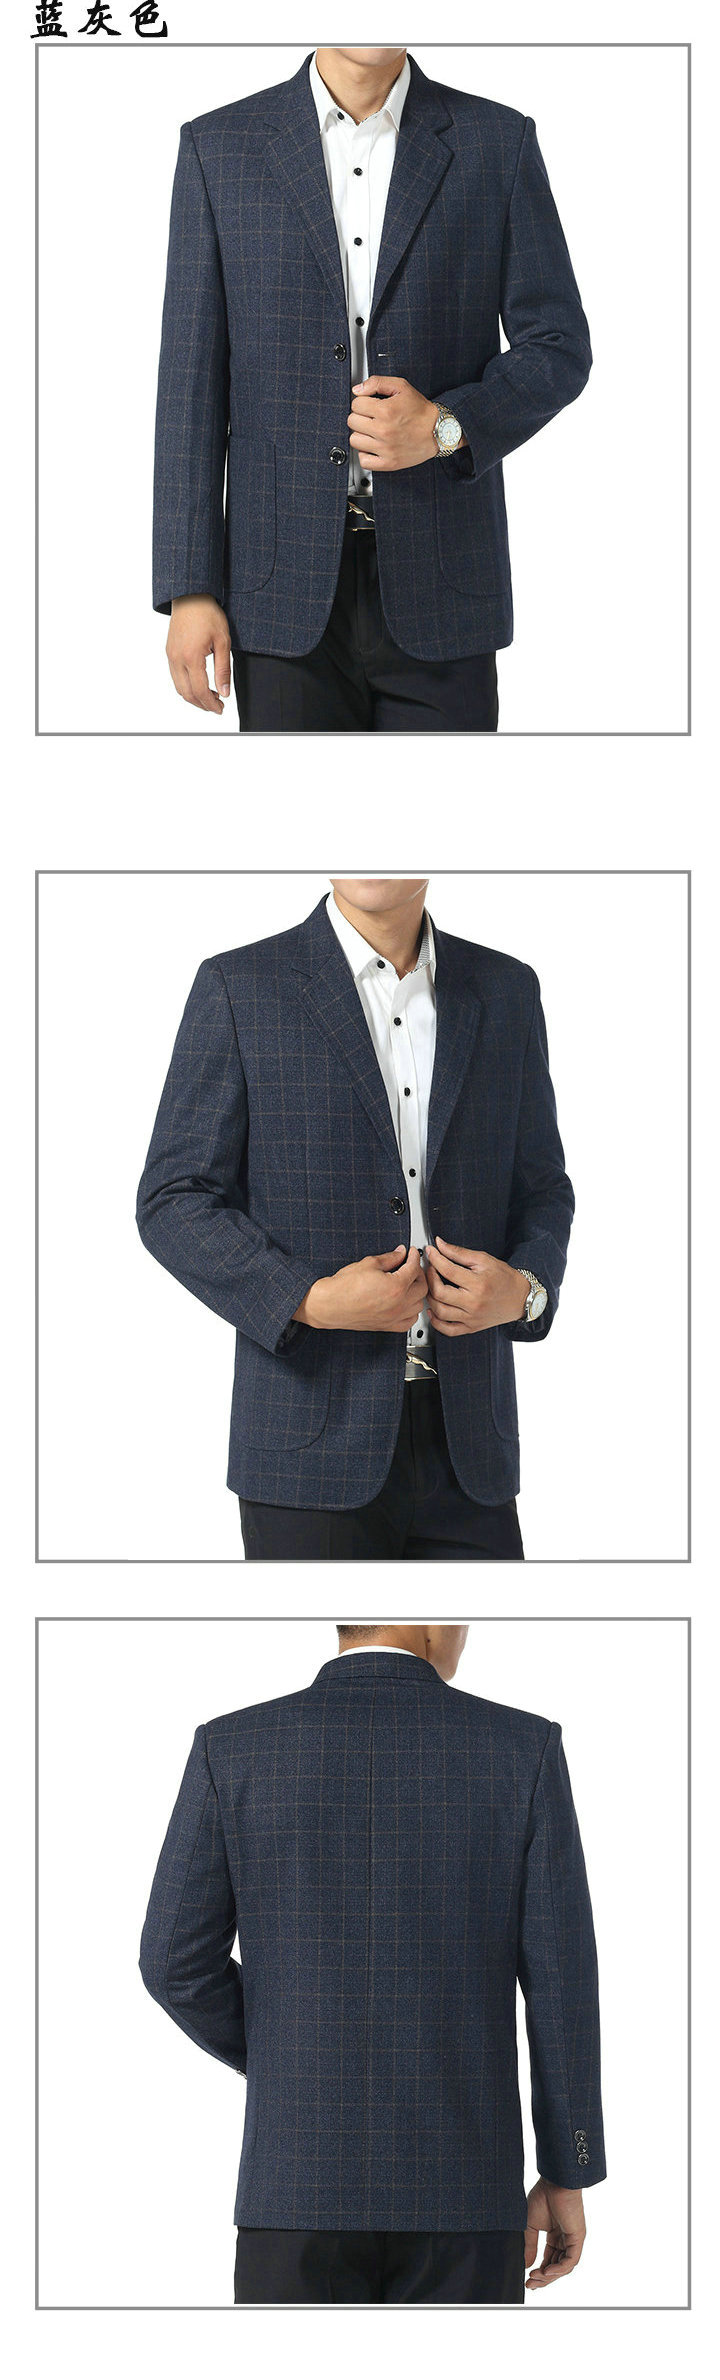 WAEOLSA Father  Blazer Blue Gray Plaid Jacket Suit Mature Men Business Casual Blazers Spring Autumn Garment Man Suit Coat (5)